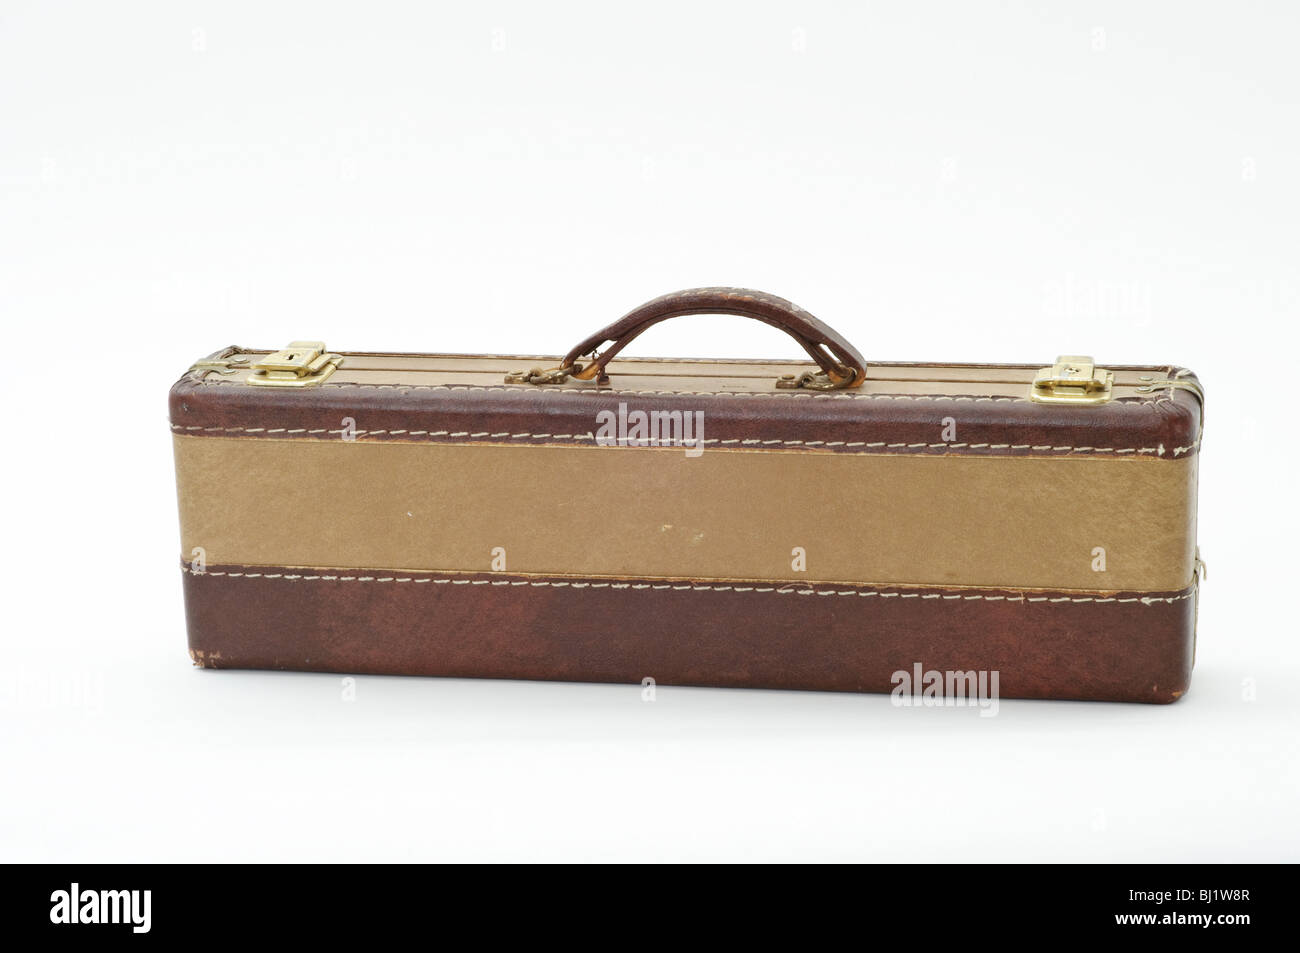 Old, beat up flute case Stock Photo: 28315975 - Alamy